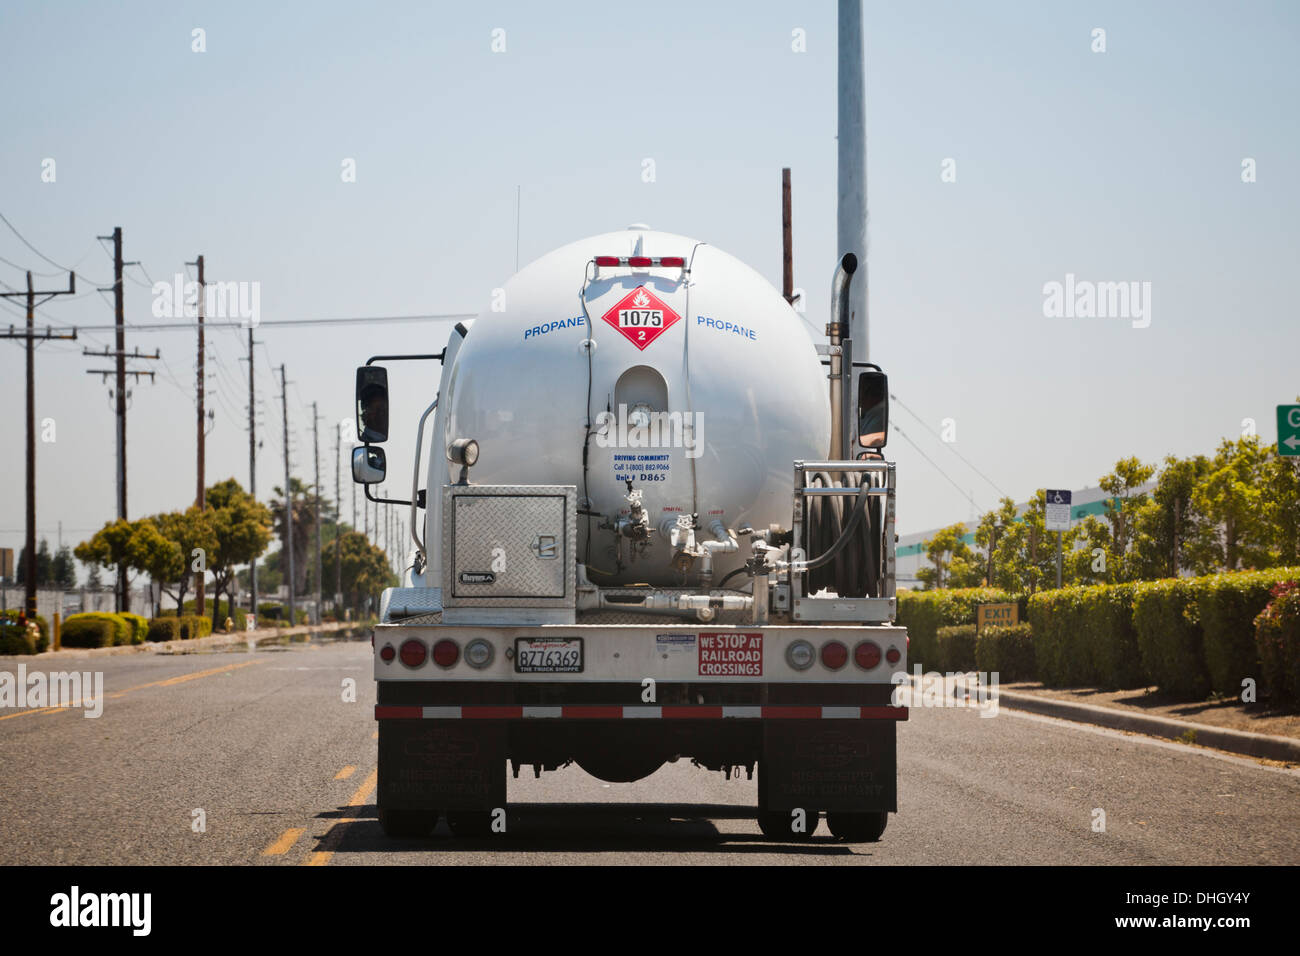 Rear view of propane tank truck on road - California USA - Stock Image